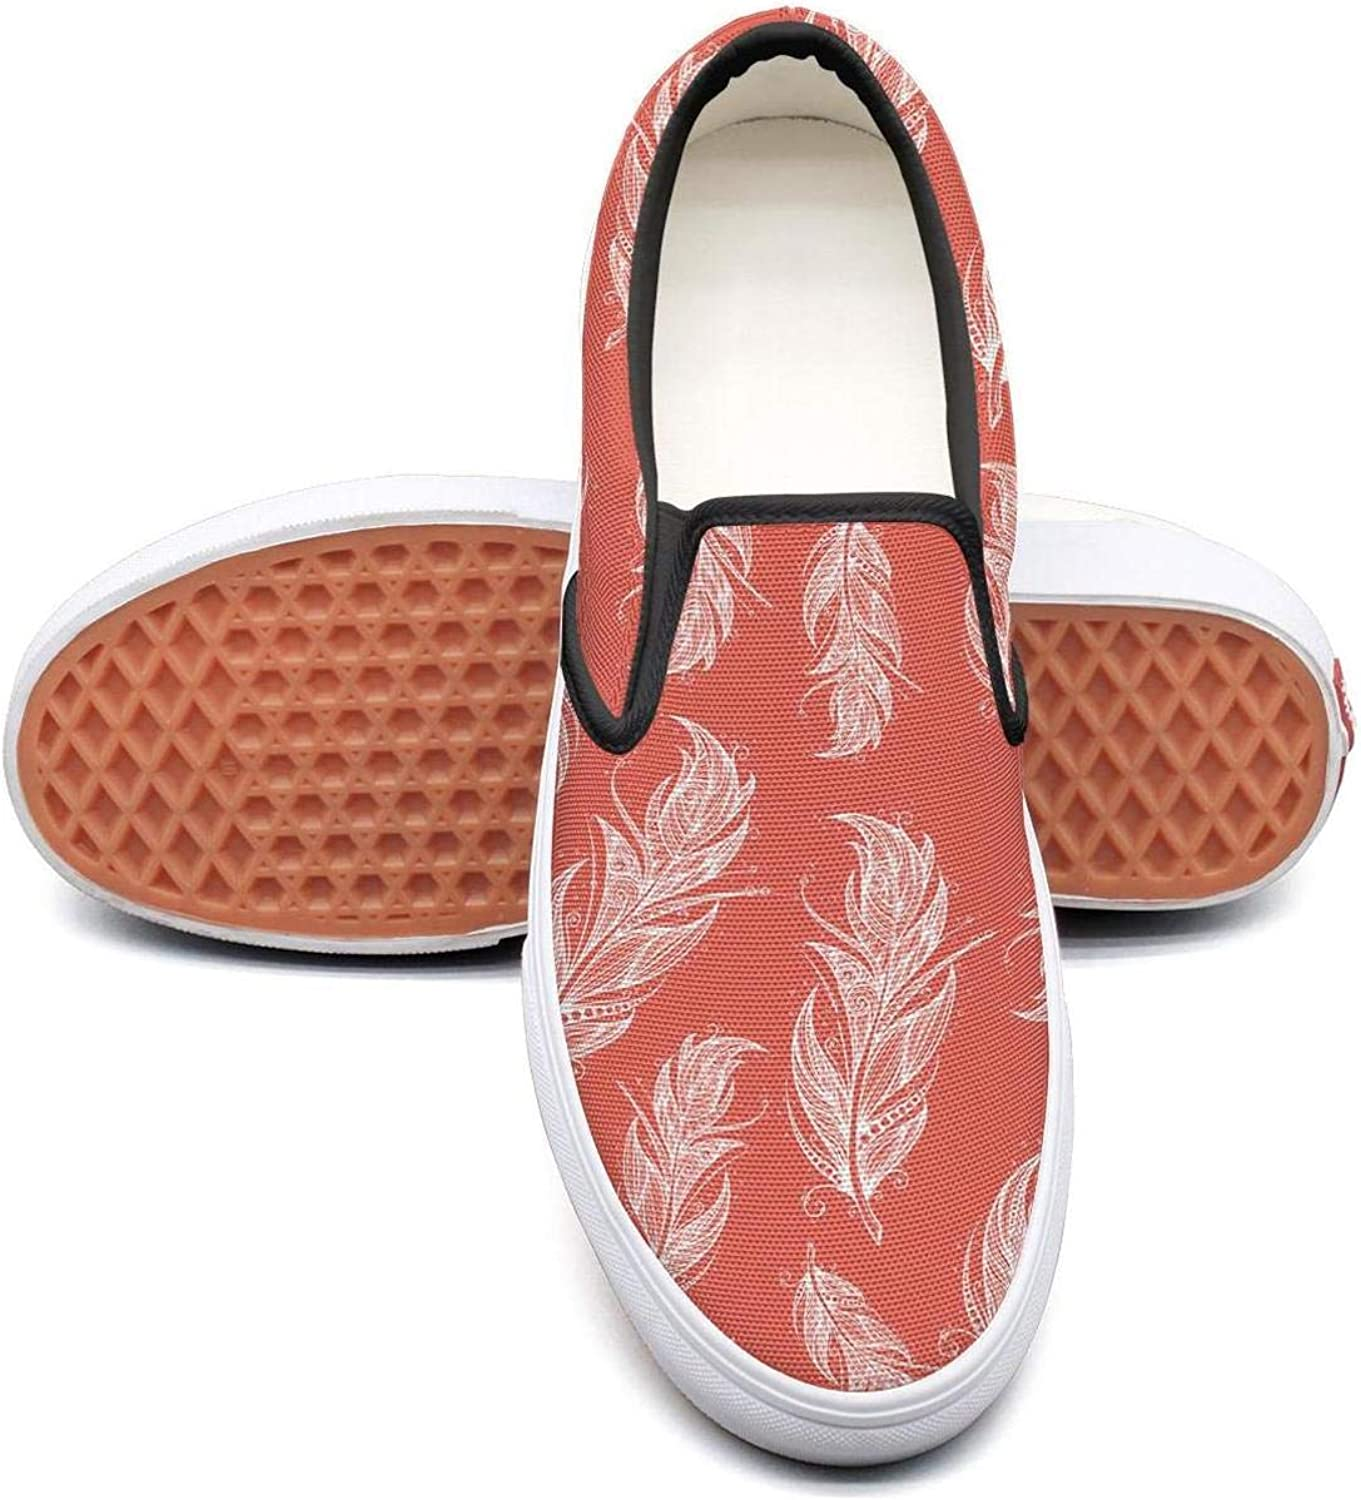 Red Tribal Feather Slip On Superior Comfort Sneakers Canvas shoes for Women Fashion